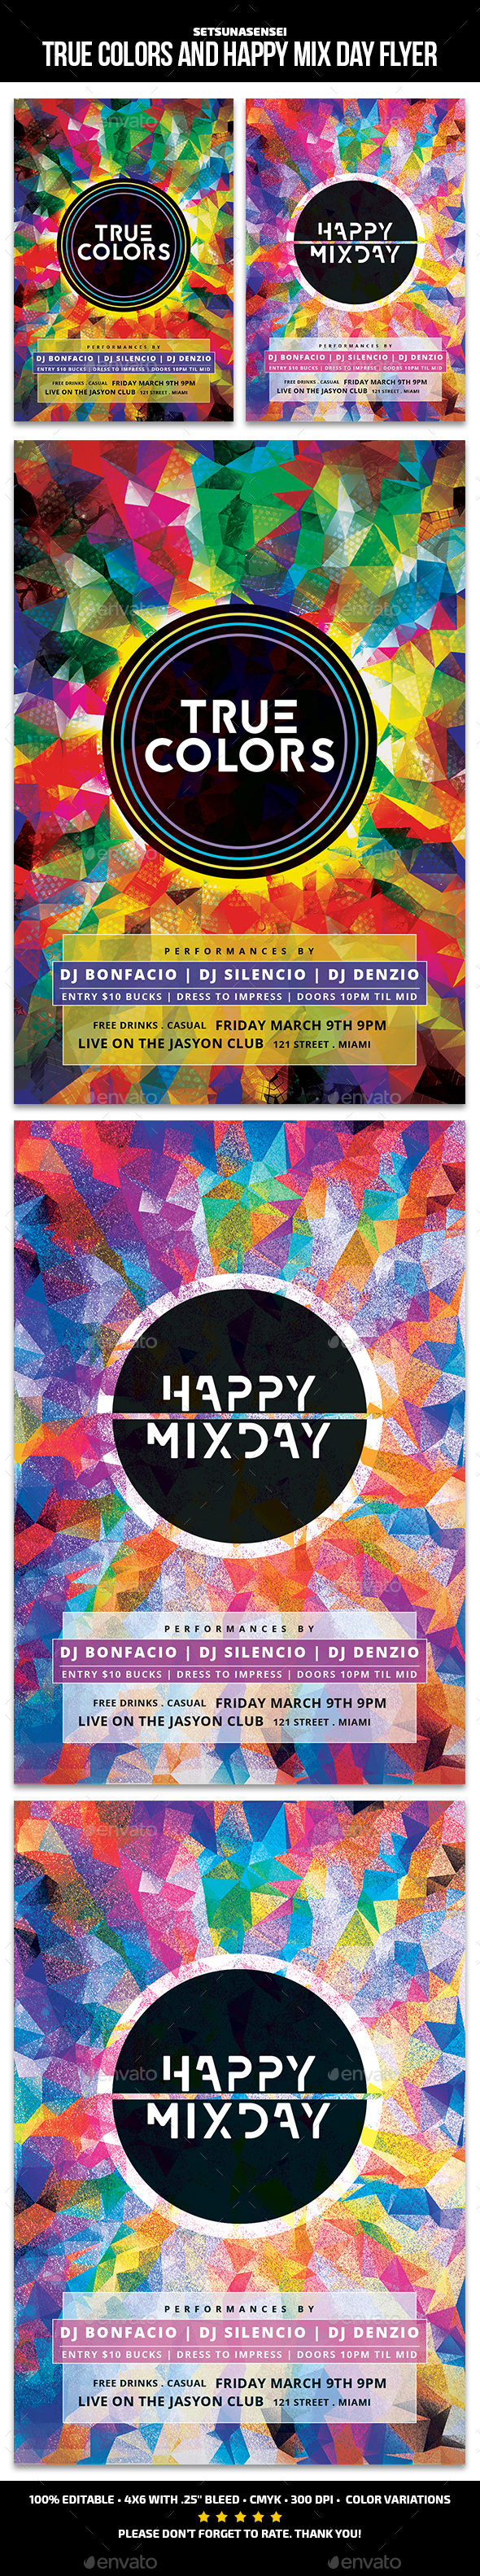 True Colors and Happy Mix Day Flyer - Events Flyers